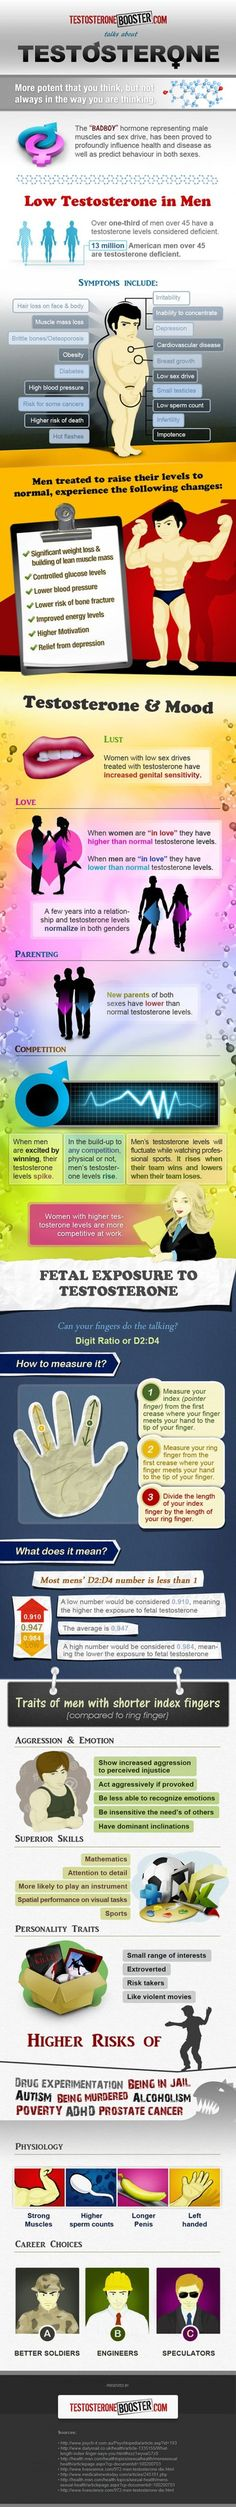 Testosterone: Potent But Not Always In The Way You Think Infographic